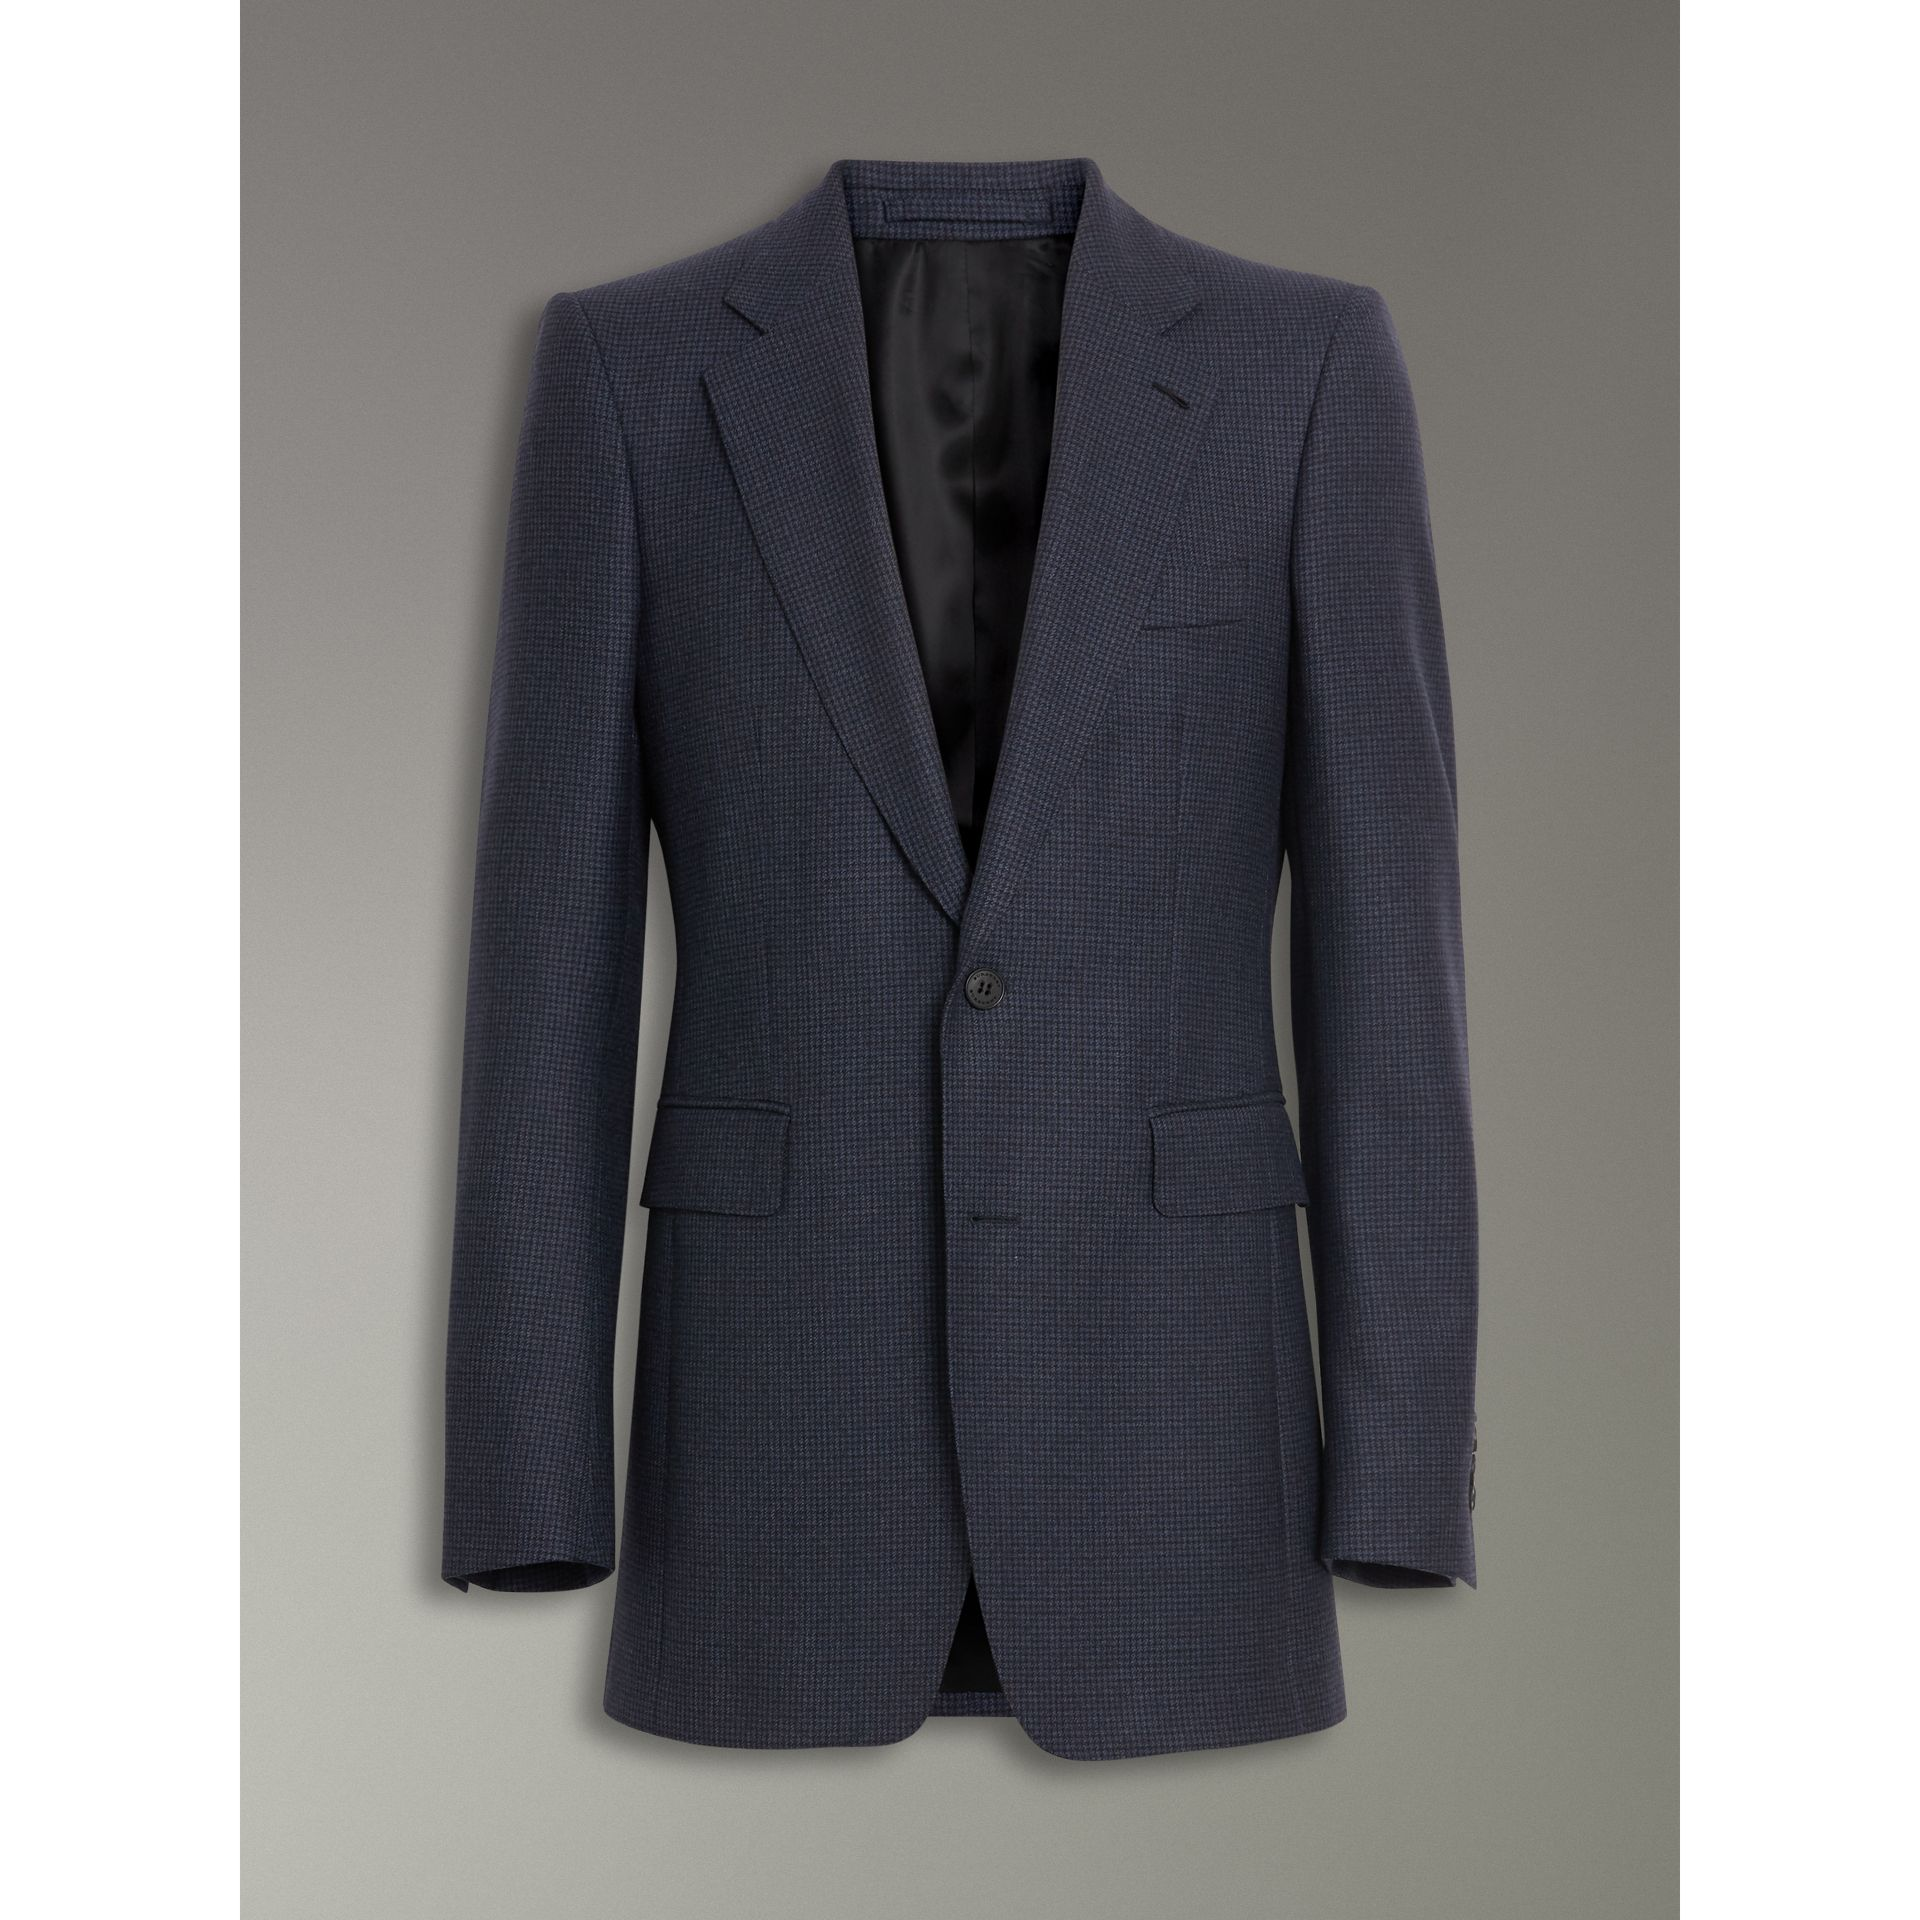 Slim Fit Puppytooth Wool Suit in Navy - Men | Burberry United Kingdom - gallery image 3